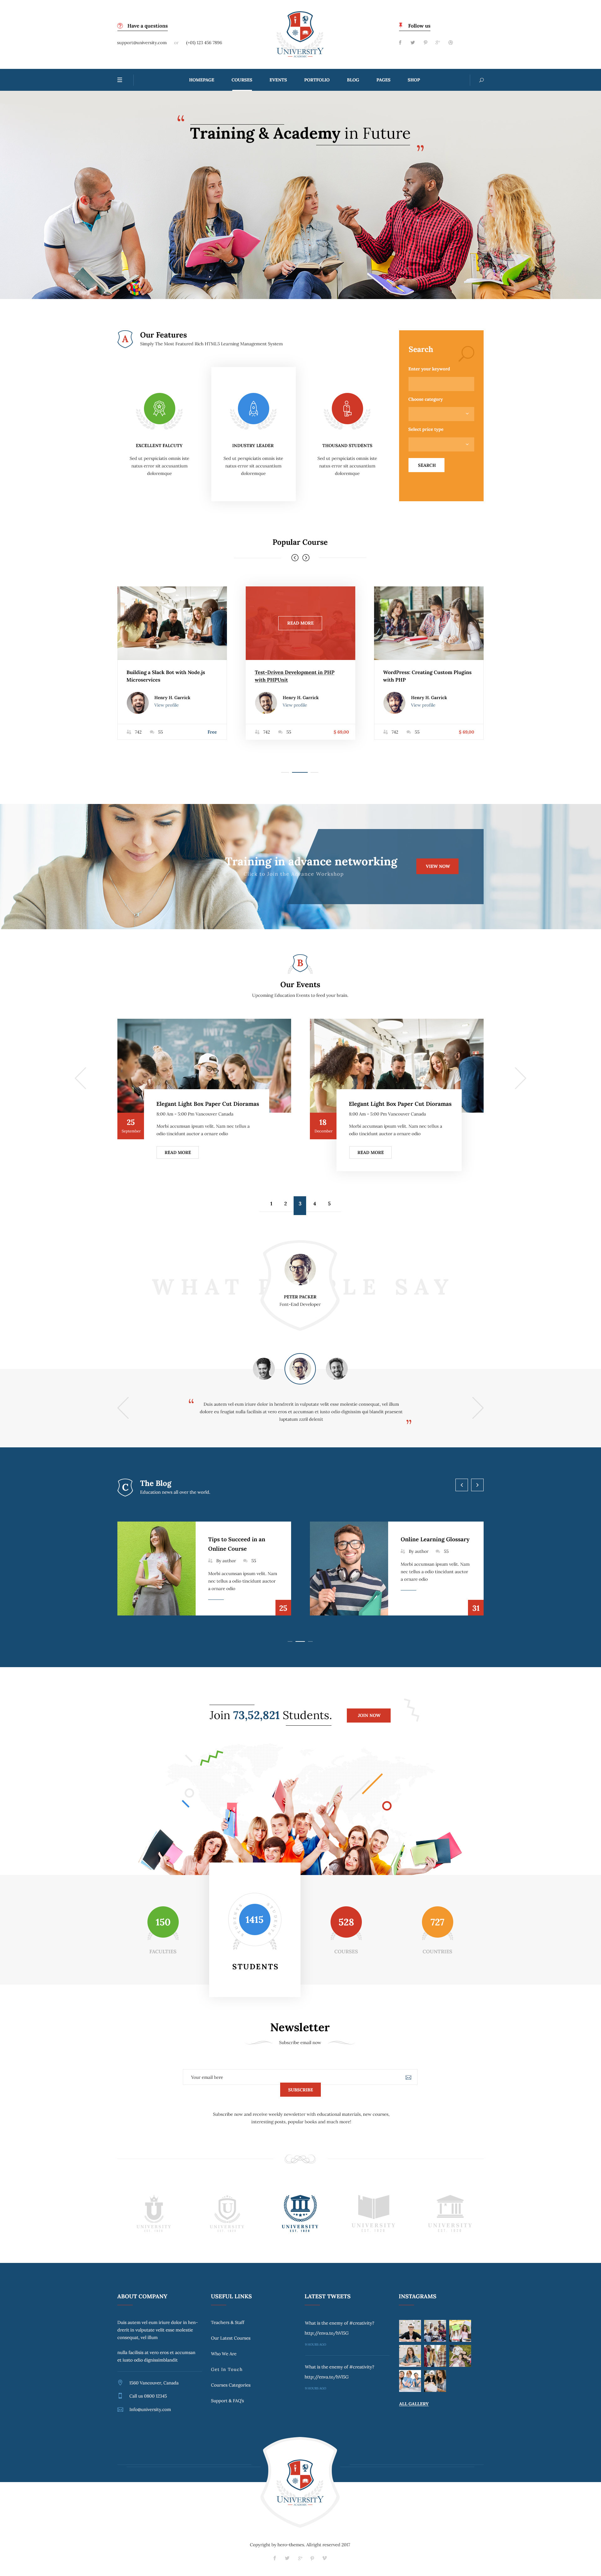 University education course academy psd templates by tivatheme preview05 homepage v5g preview06 homepage v6g preview07 course listg preview08 course gridg preview09 course details fullwidthg reheart Gallery